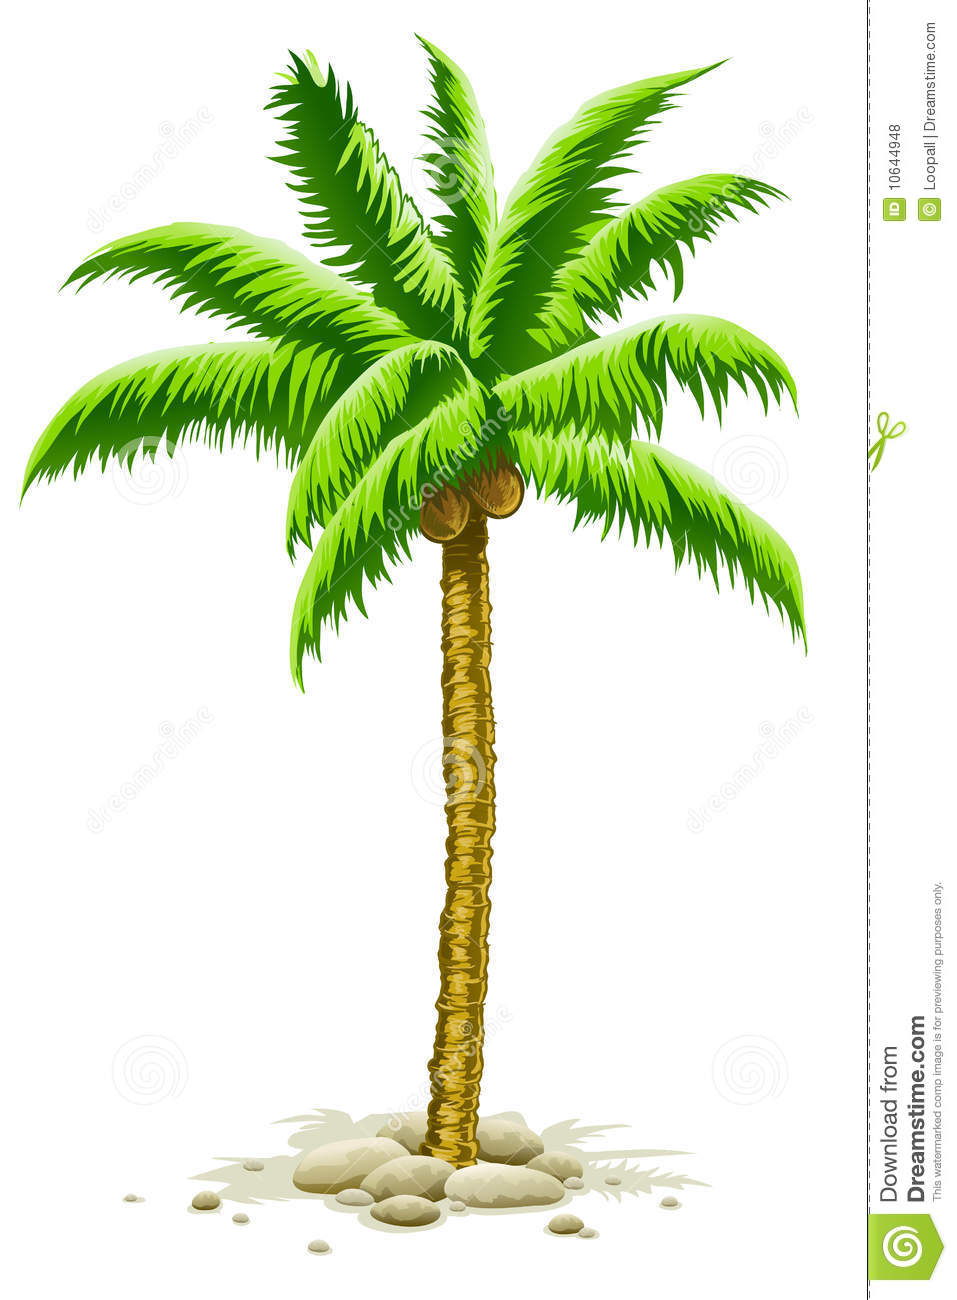 Palm Tree With Coconut Fruits Stock Illustration - Illustration of ...